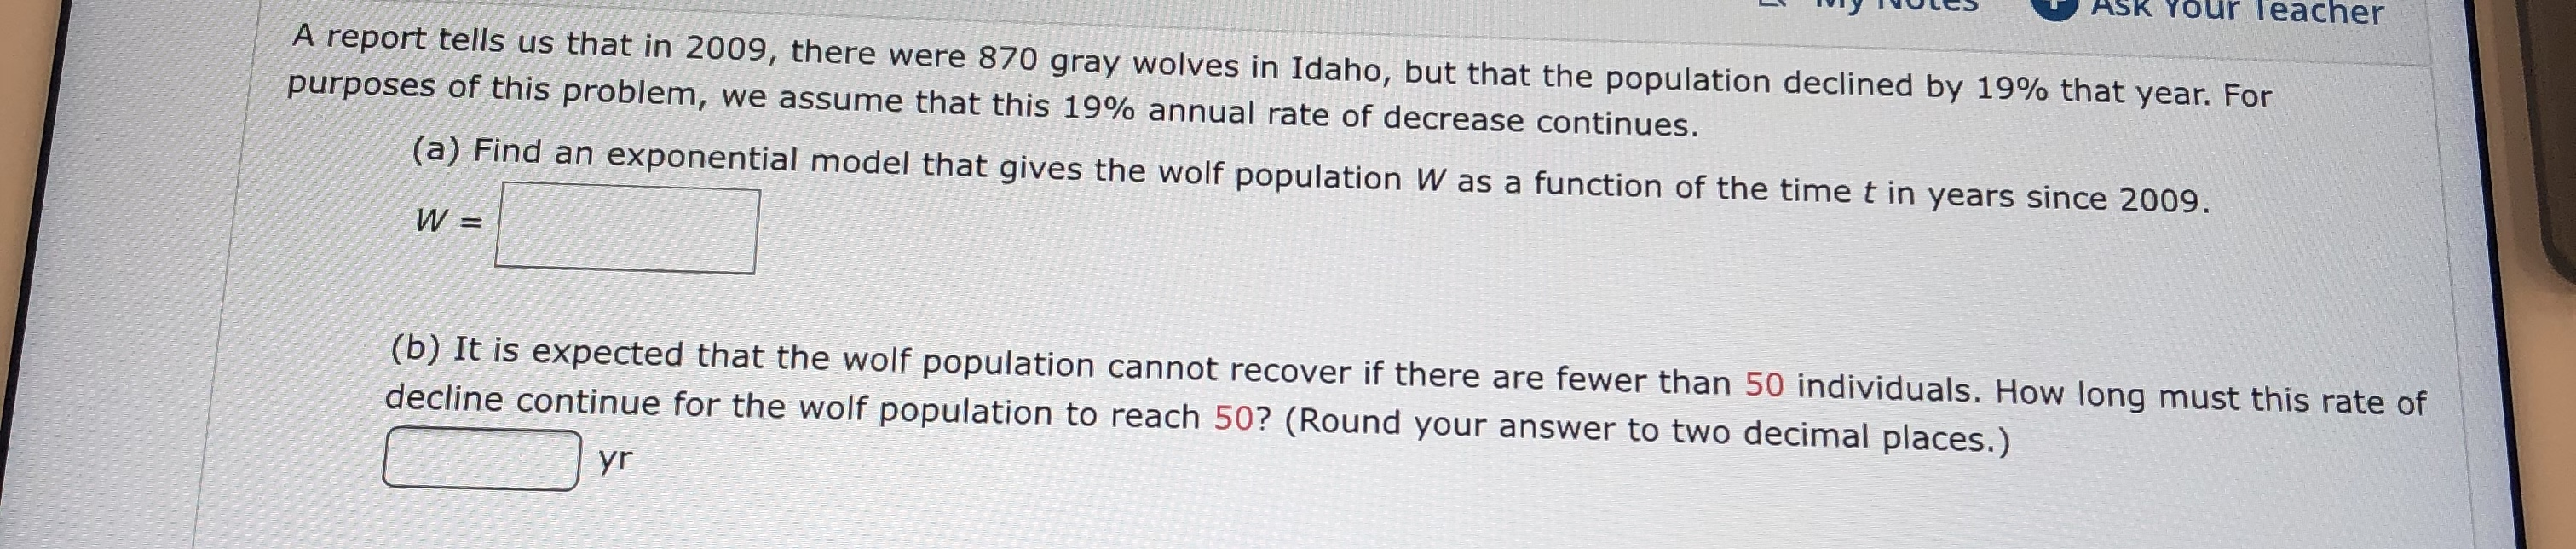 ASK YOUR Teacher A report tells us that in 2009, there were 870 gray wolves in Idaho, but that the population declined by 19% that year. For purposes of this problem, we assume that this 19% annual rate of decrease continues. (a) Find an exponential model that gives the wolf population W as a function of the time t in years since 2009 W = (b) It is expected that the wolf population cannot recover if there are fewer than 50 individuals. How long must this rate of decline continue for the wolf population to reach 50? (Round your answer to two decimal places.) yr